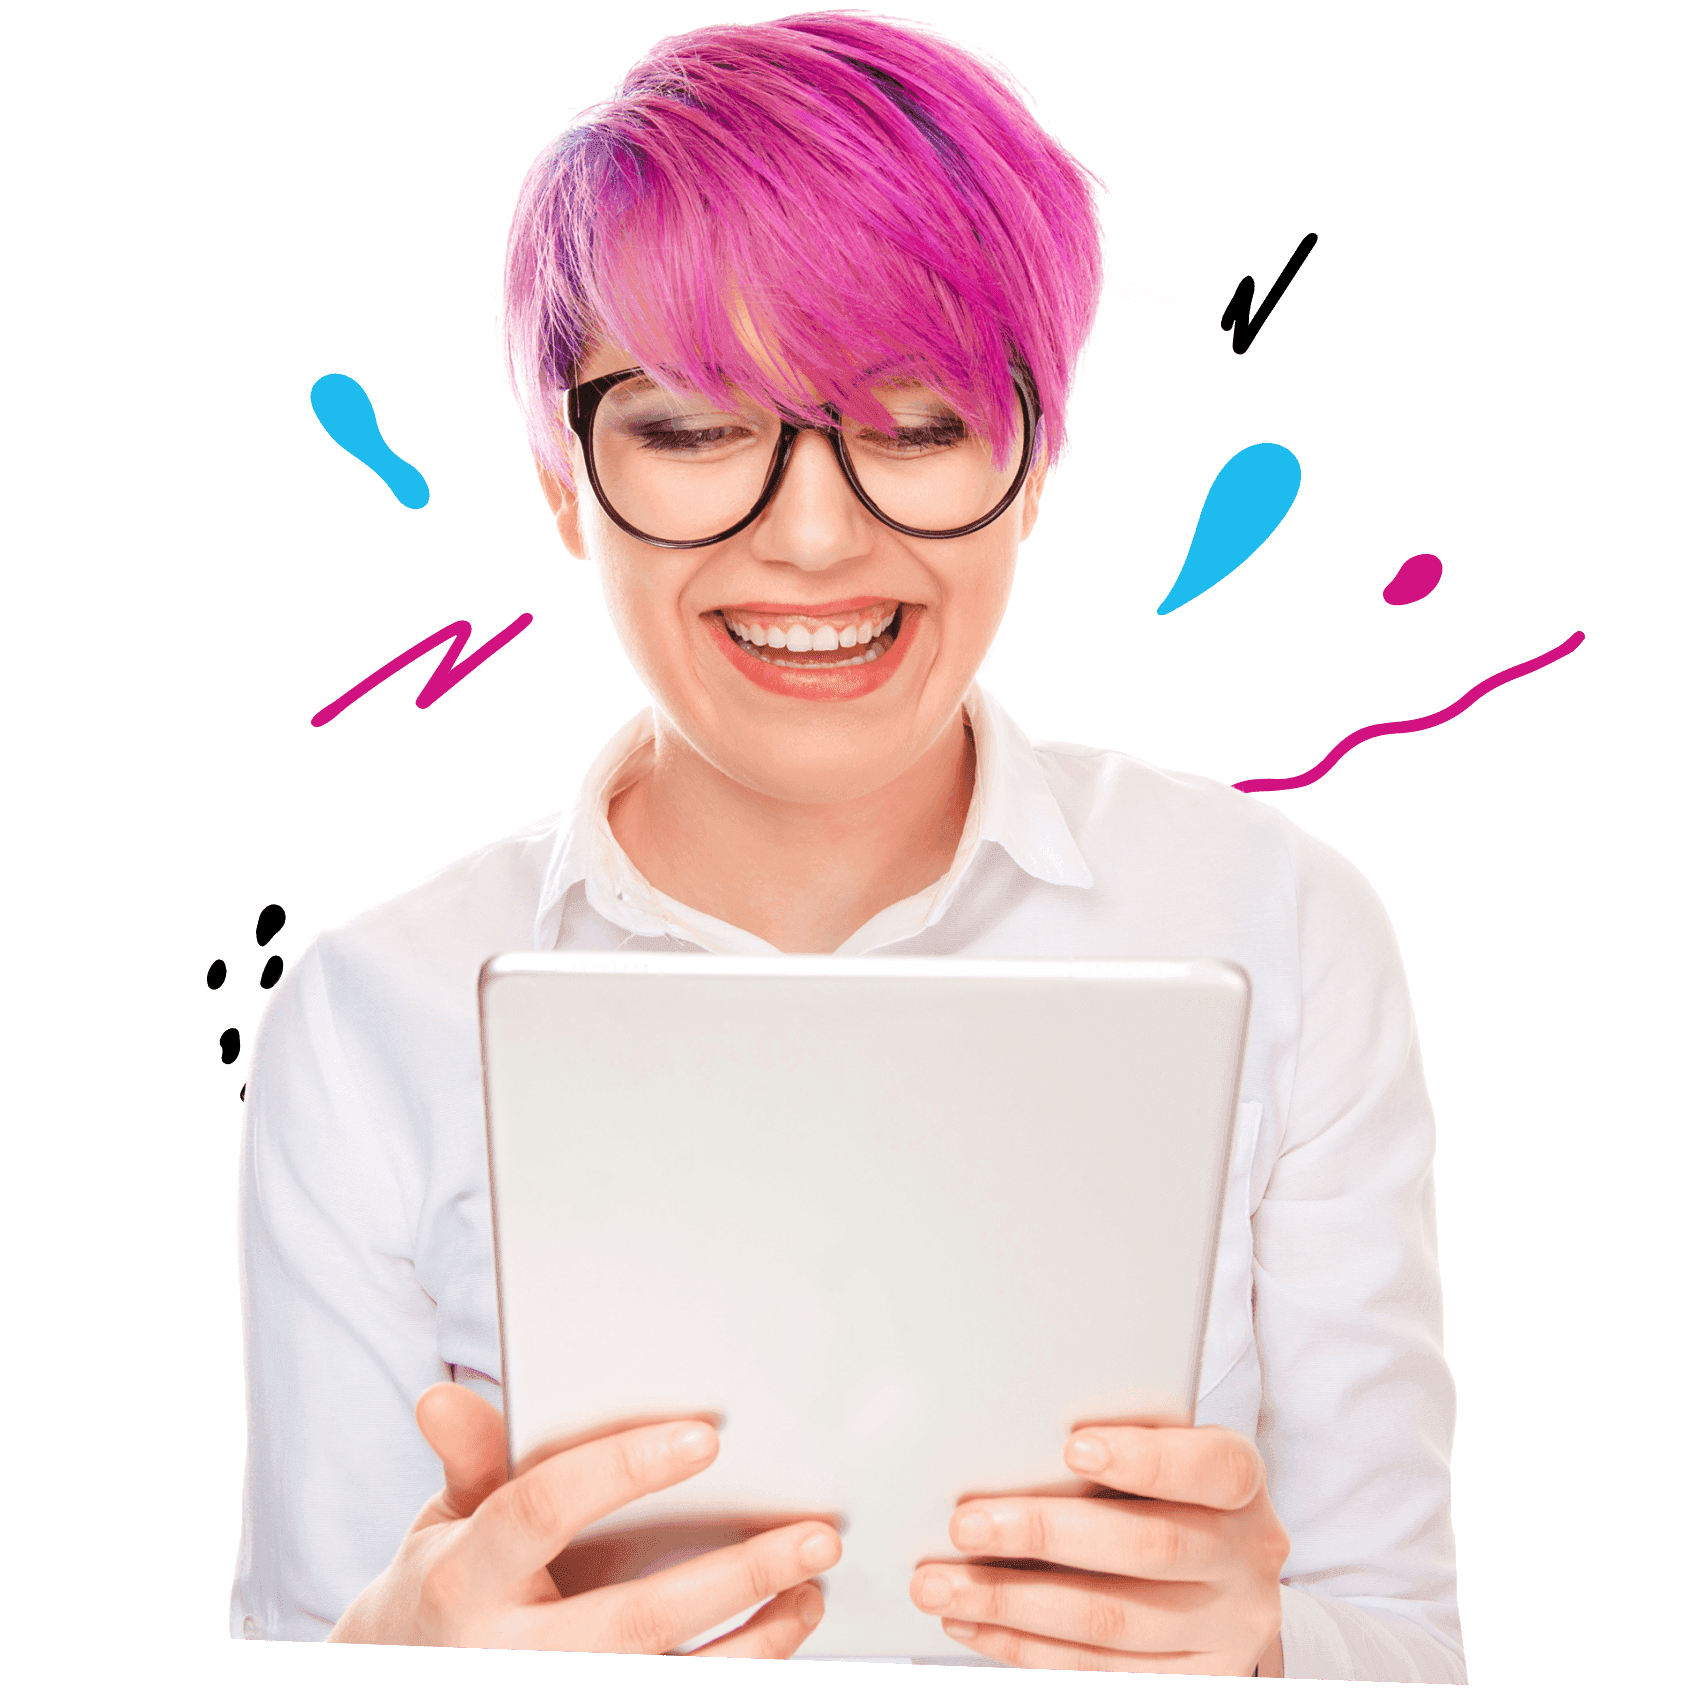 student-with-magenta-hair-laughing-at-shmoop-on-tablet